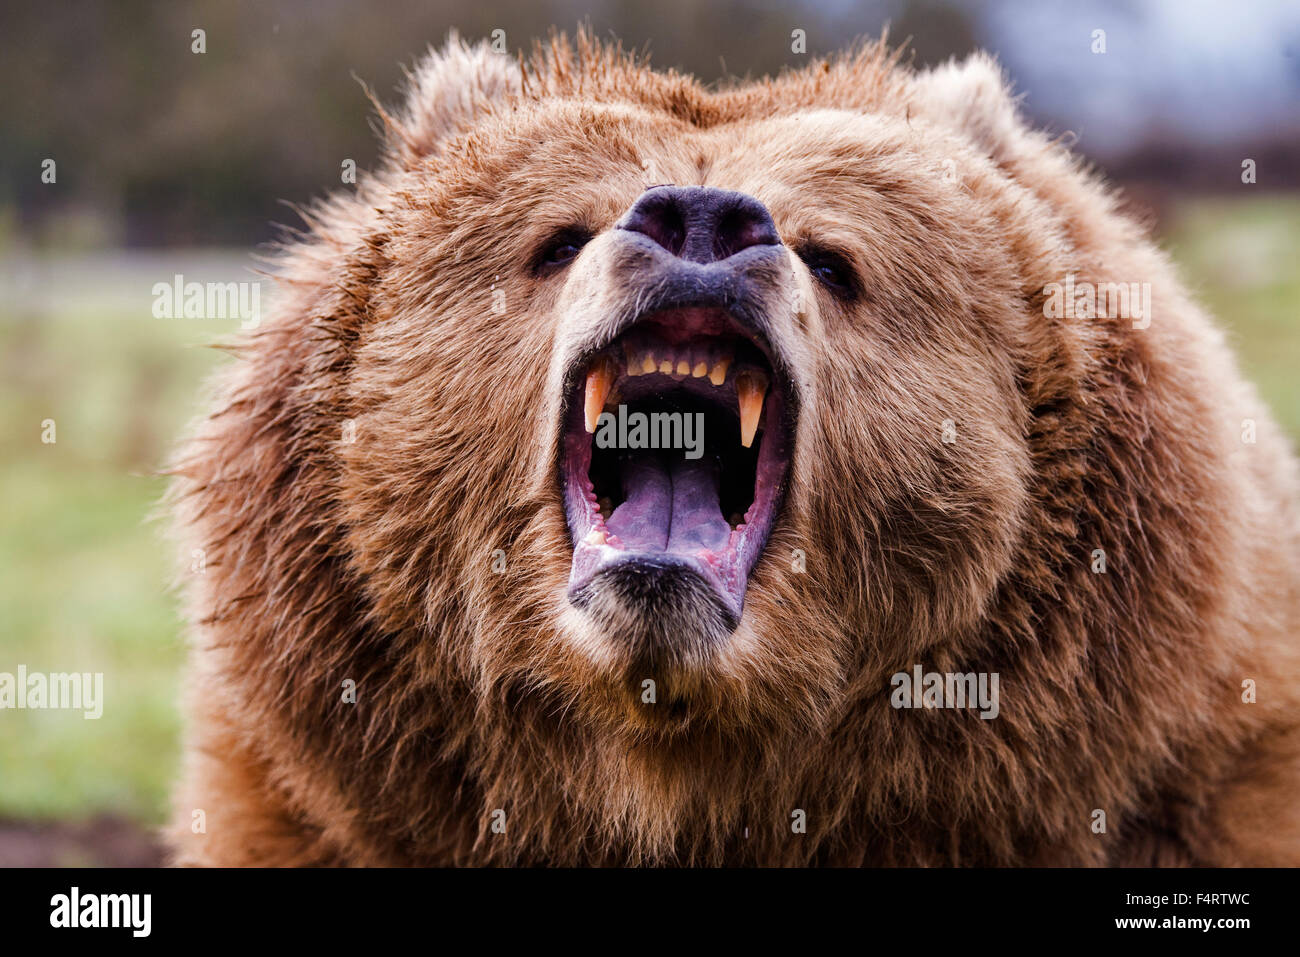 Ours brun, Ursus arctos, ours, animal, USA, chef Photo Stock